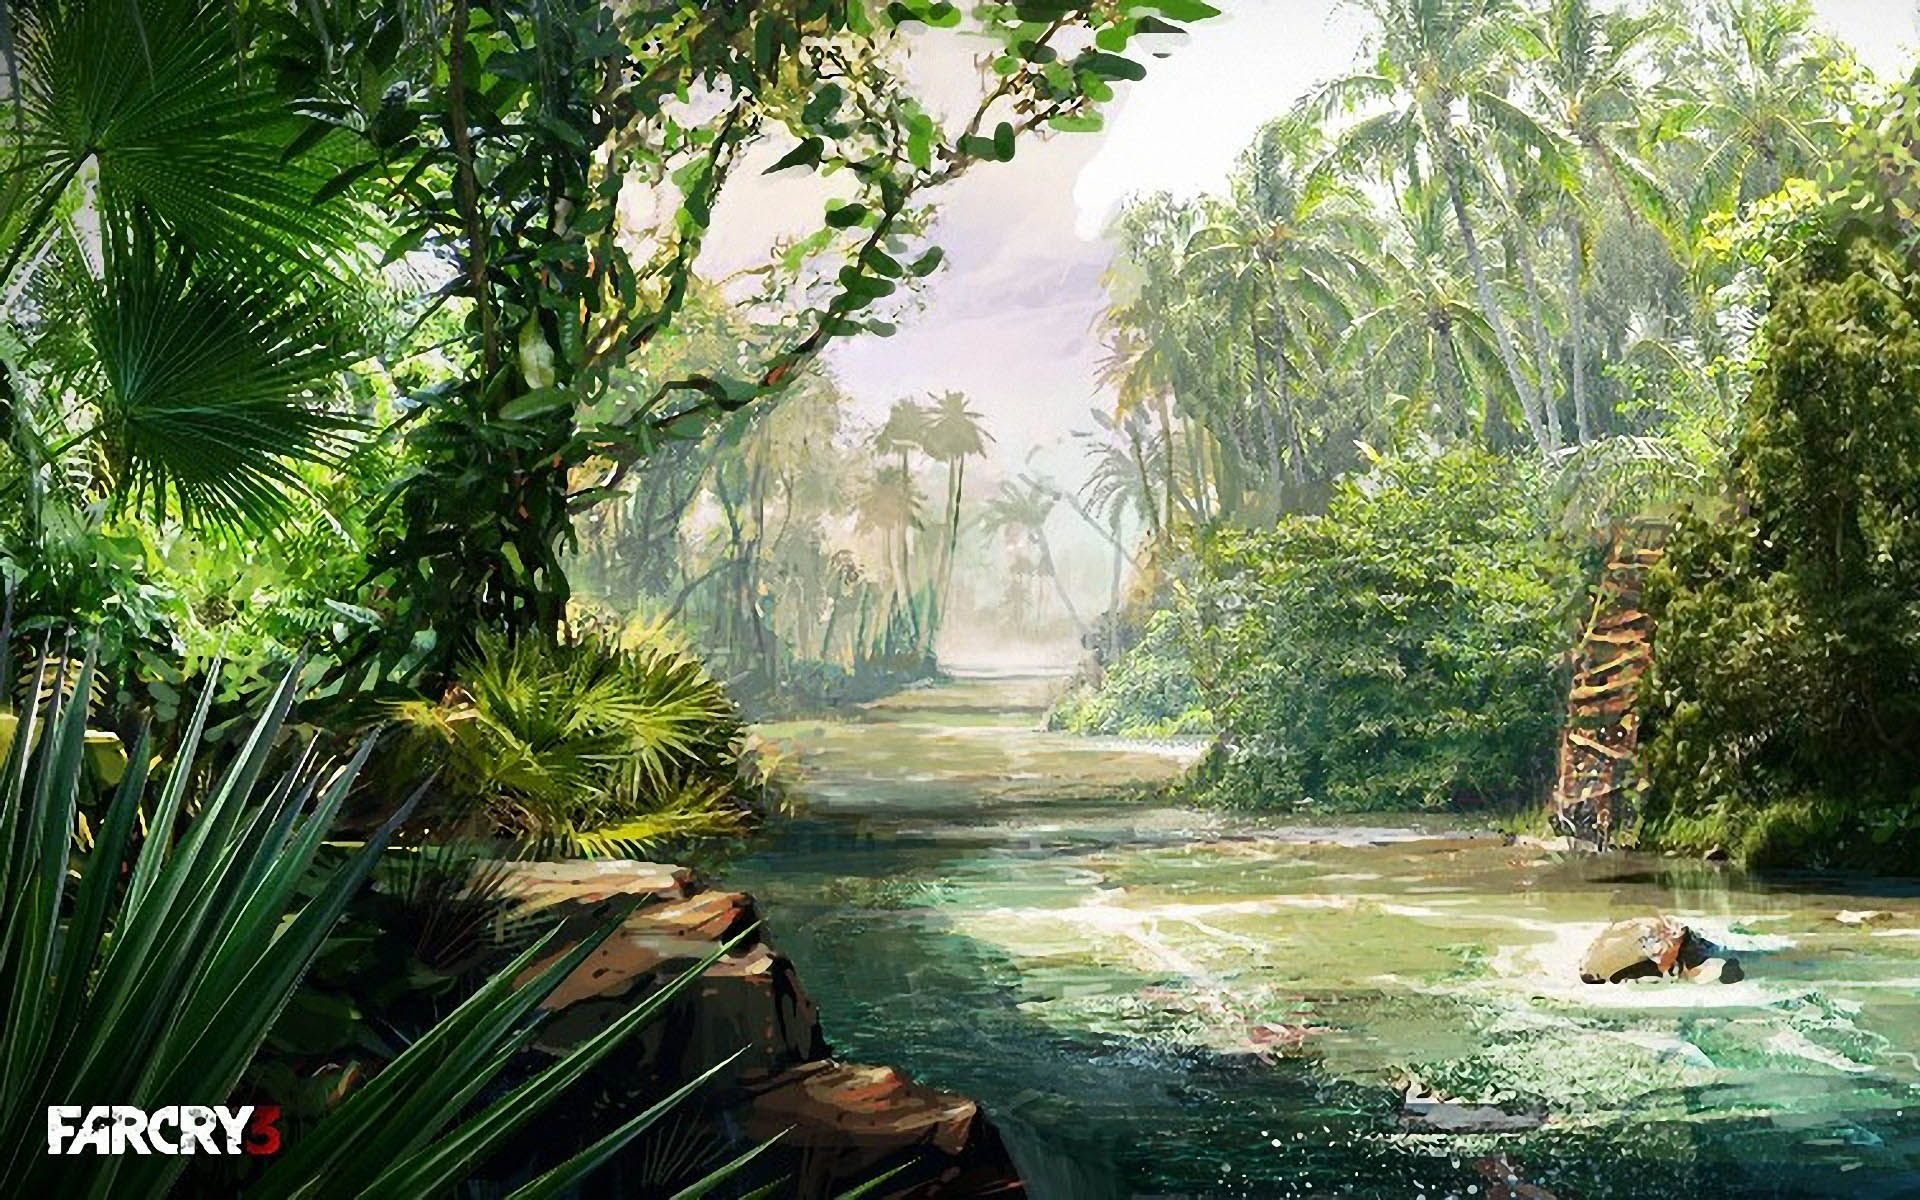 Free Download Far Cry 3 River 1920x1200 Wallpapers 1920x1200